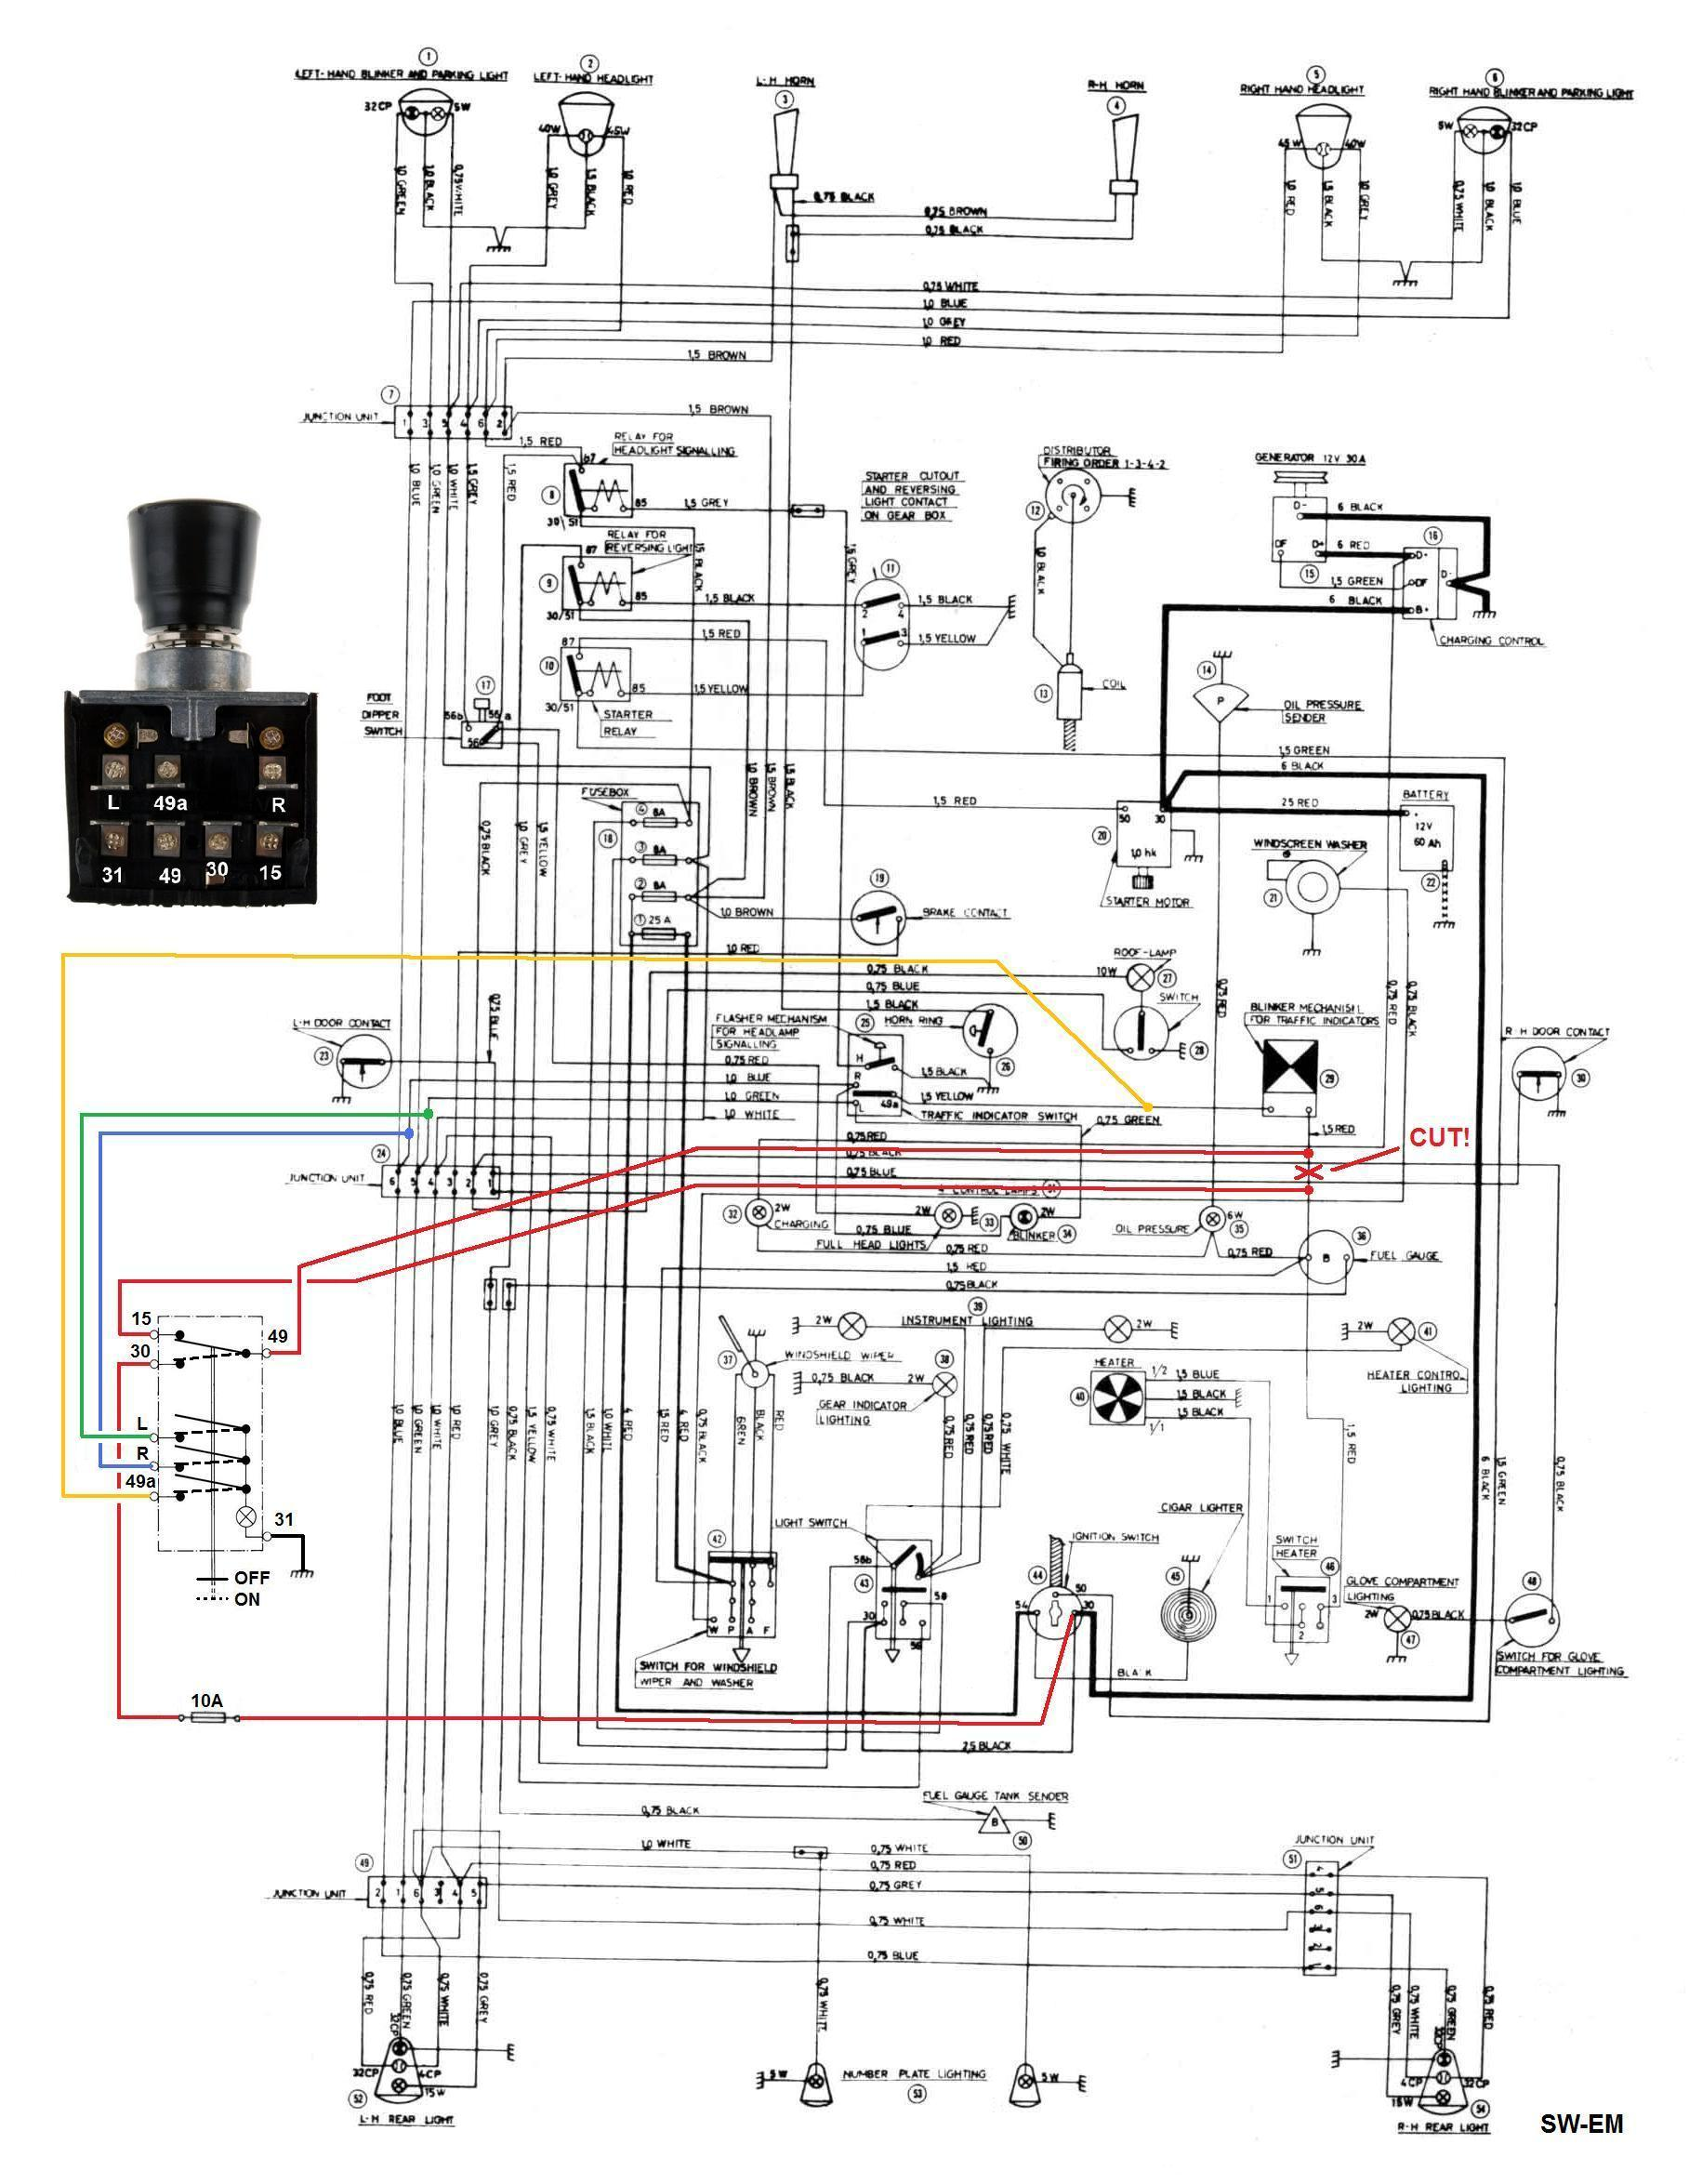 Galls St160 Siren Wiring Diagram | Wiring Liry on